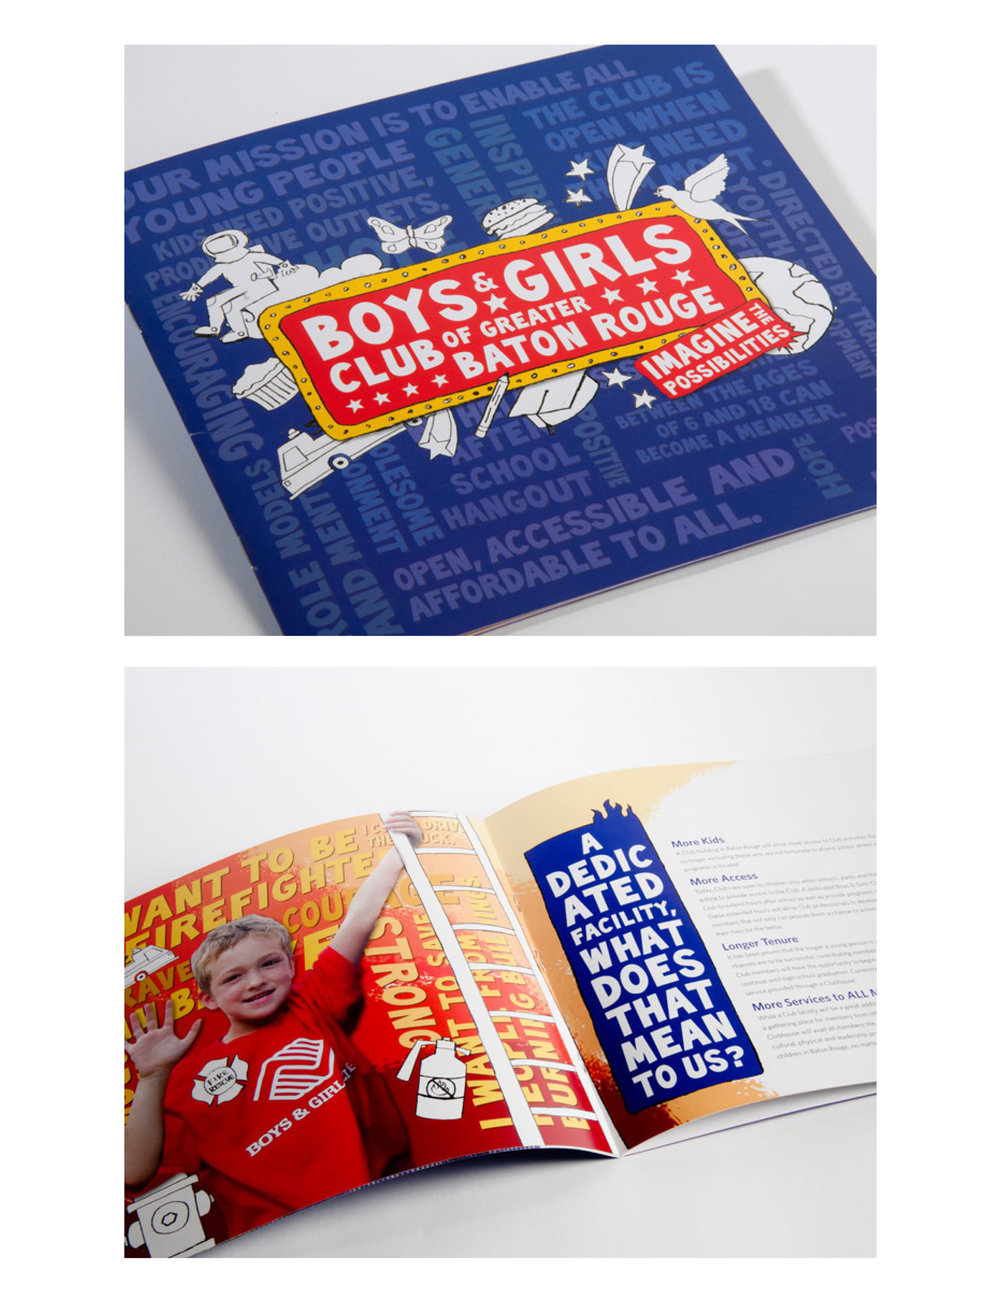 Boys & Girls Club of Baton Rouge: promotional booklet